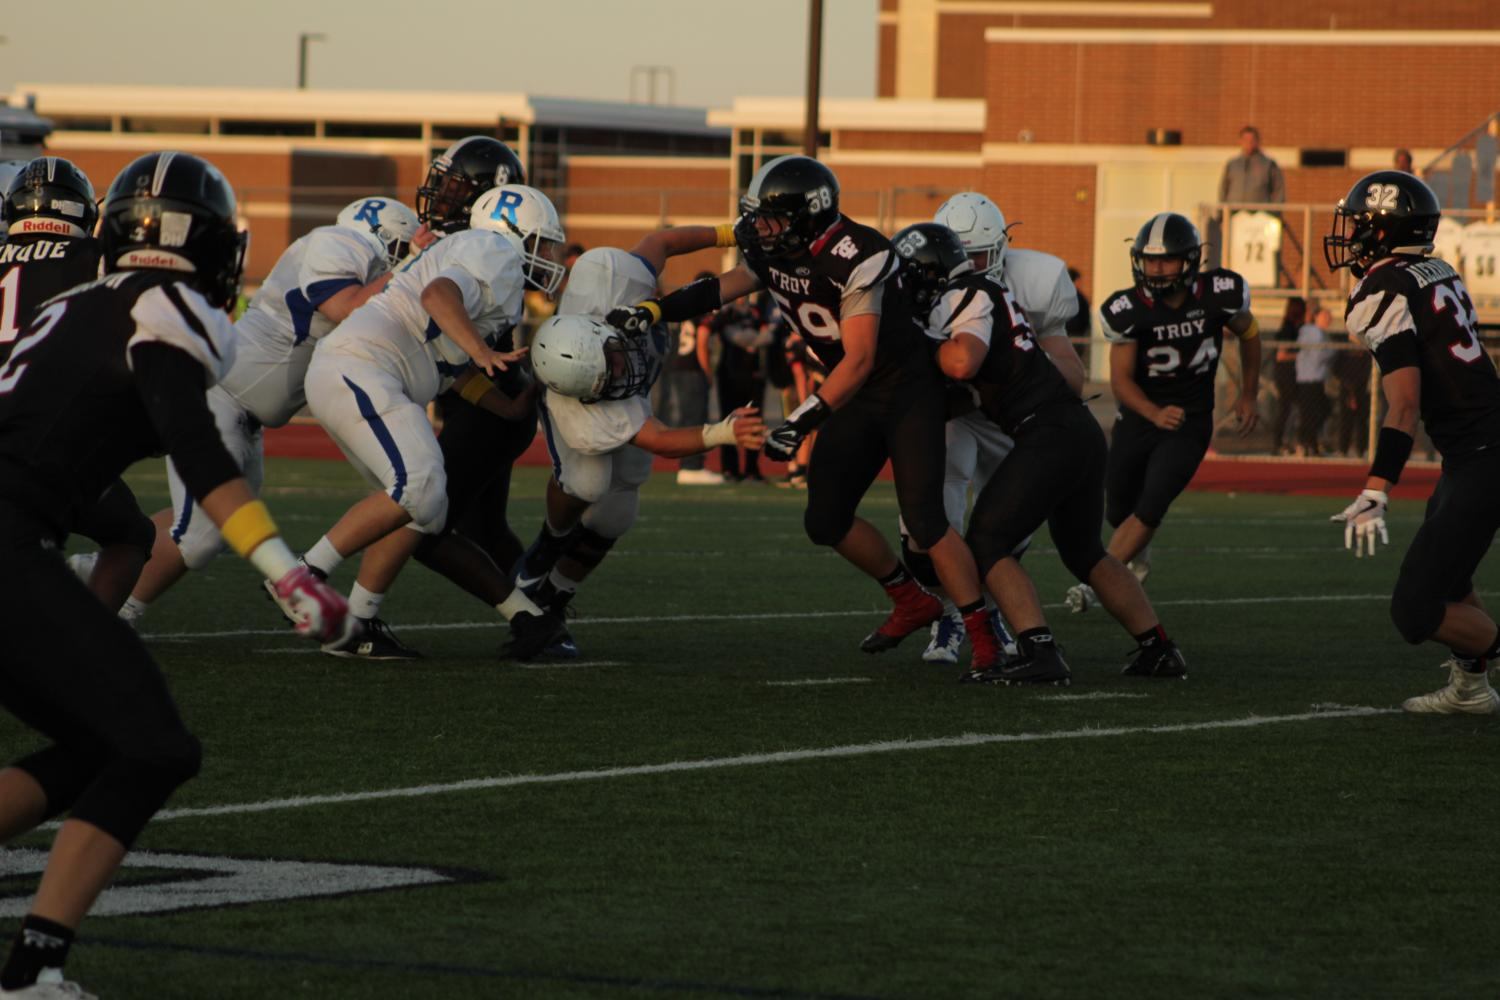 Juniors Jake Volek and Ben Buia go head to head with Rochester team.